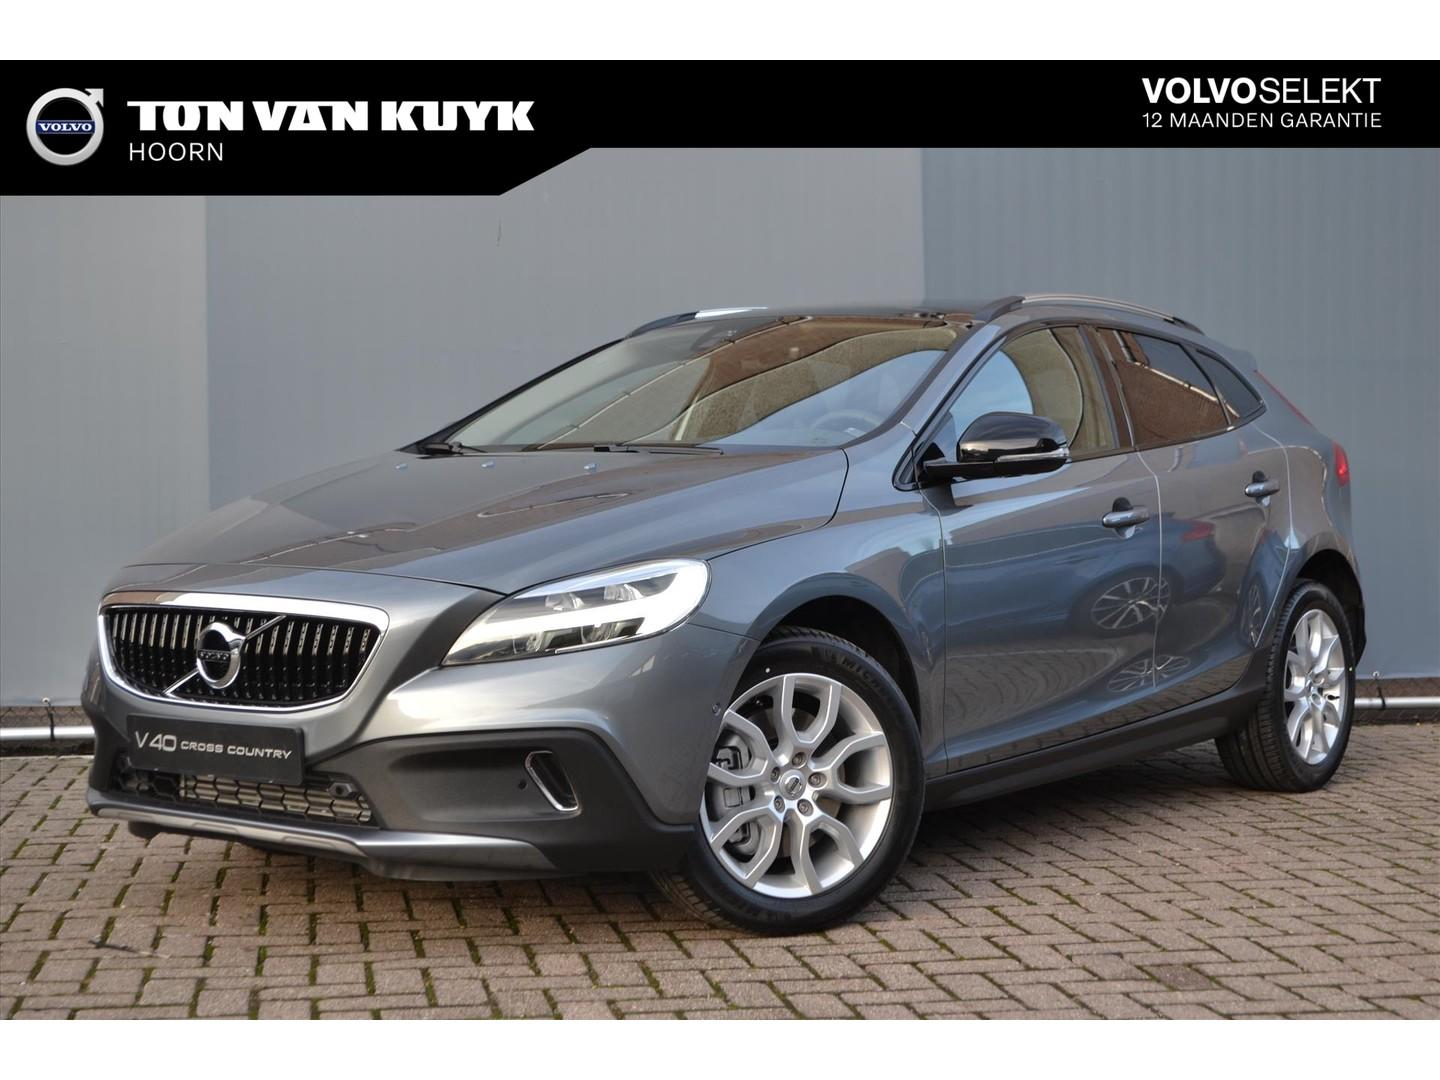 Volvo V40 cross country T3 152pk geartronic polar+ luxury intellisafe parkeerverw.